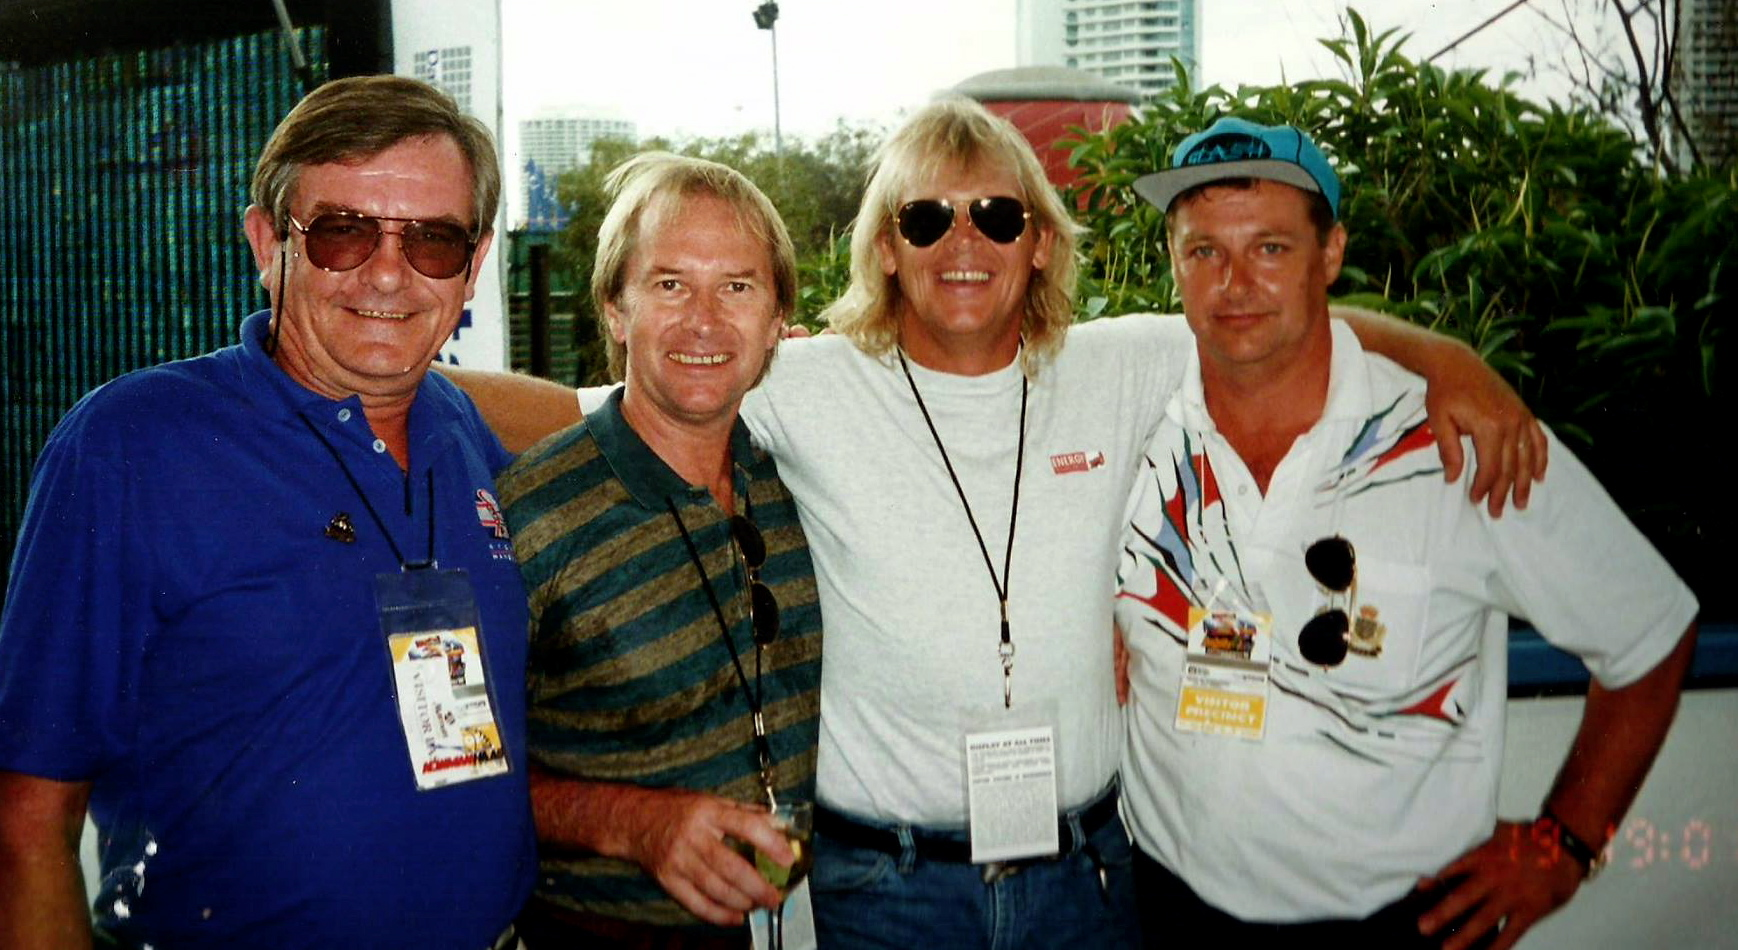 Ziggy Stengelis, Glenn Wheatley, John Farnham and Shaun Edwards at the Indy Grand Prix on the Gold Coast, Qld,1994. The four of us spent three days and two nights together....what a trip!